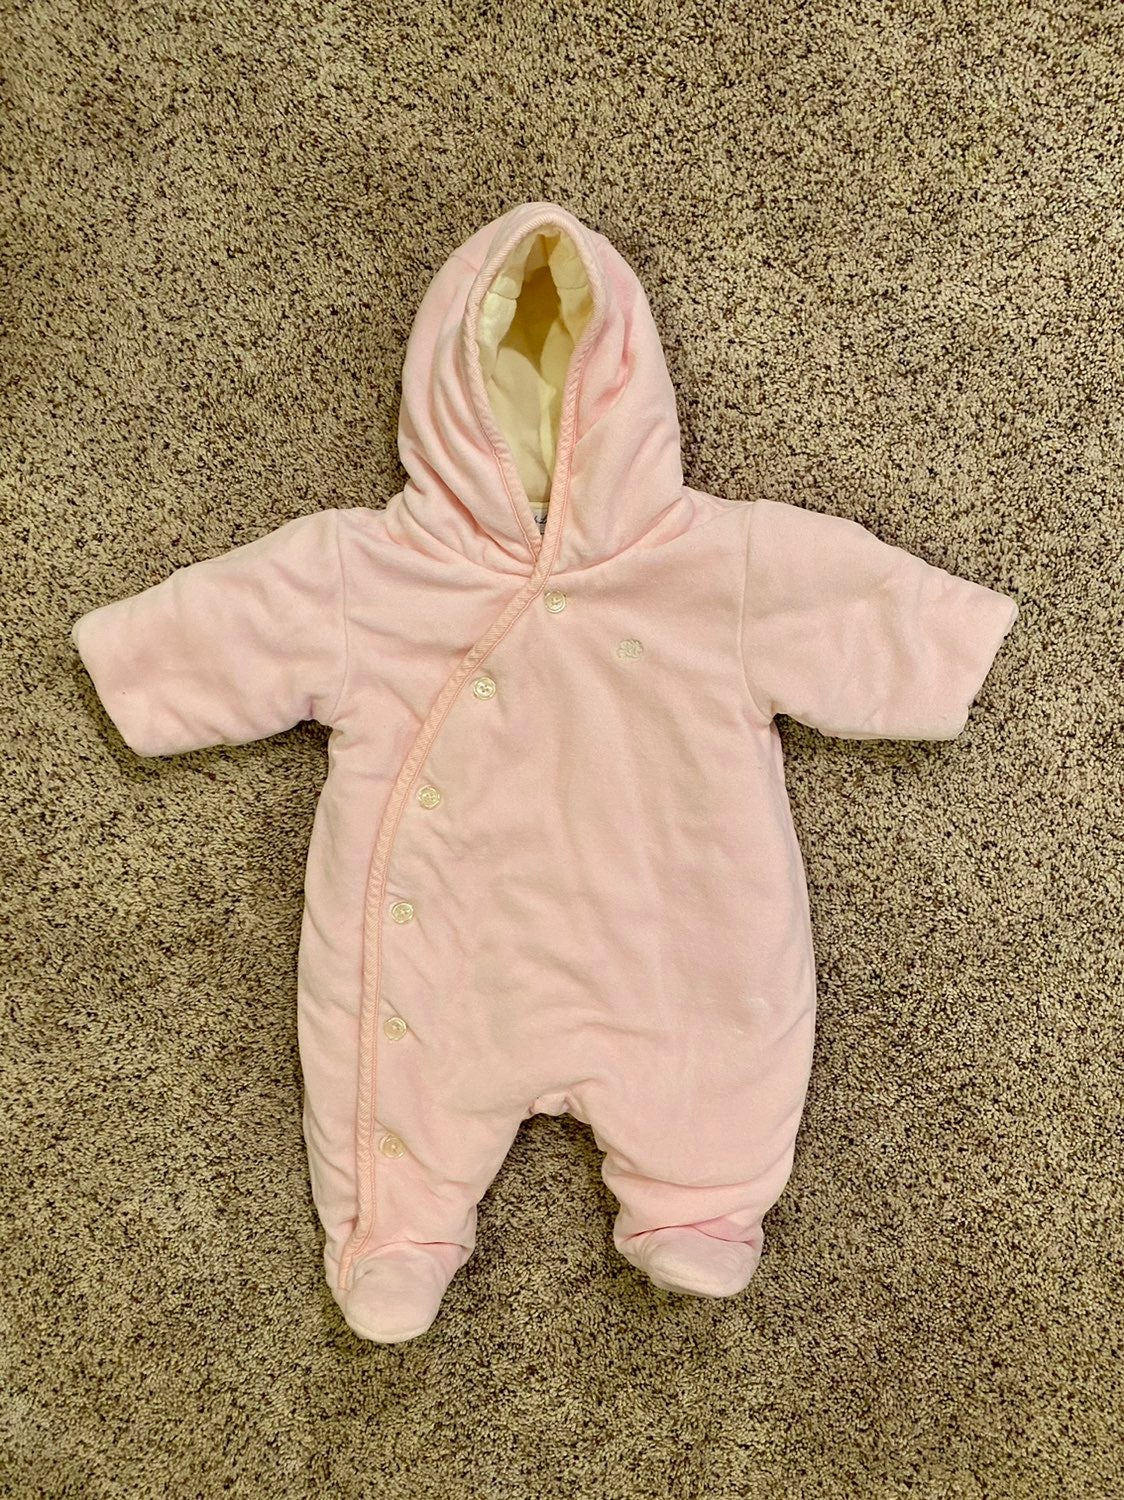 Ralph Lauren baby girl winter onesie 3m